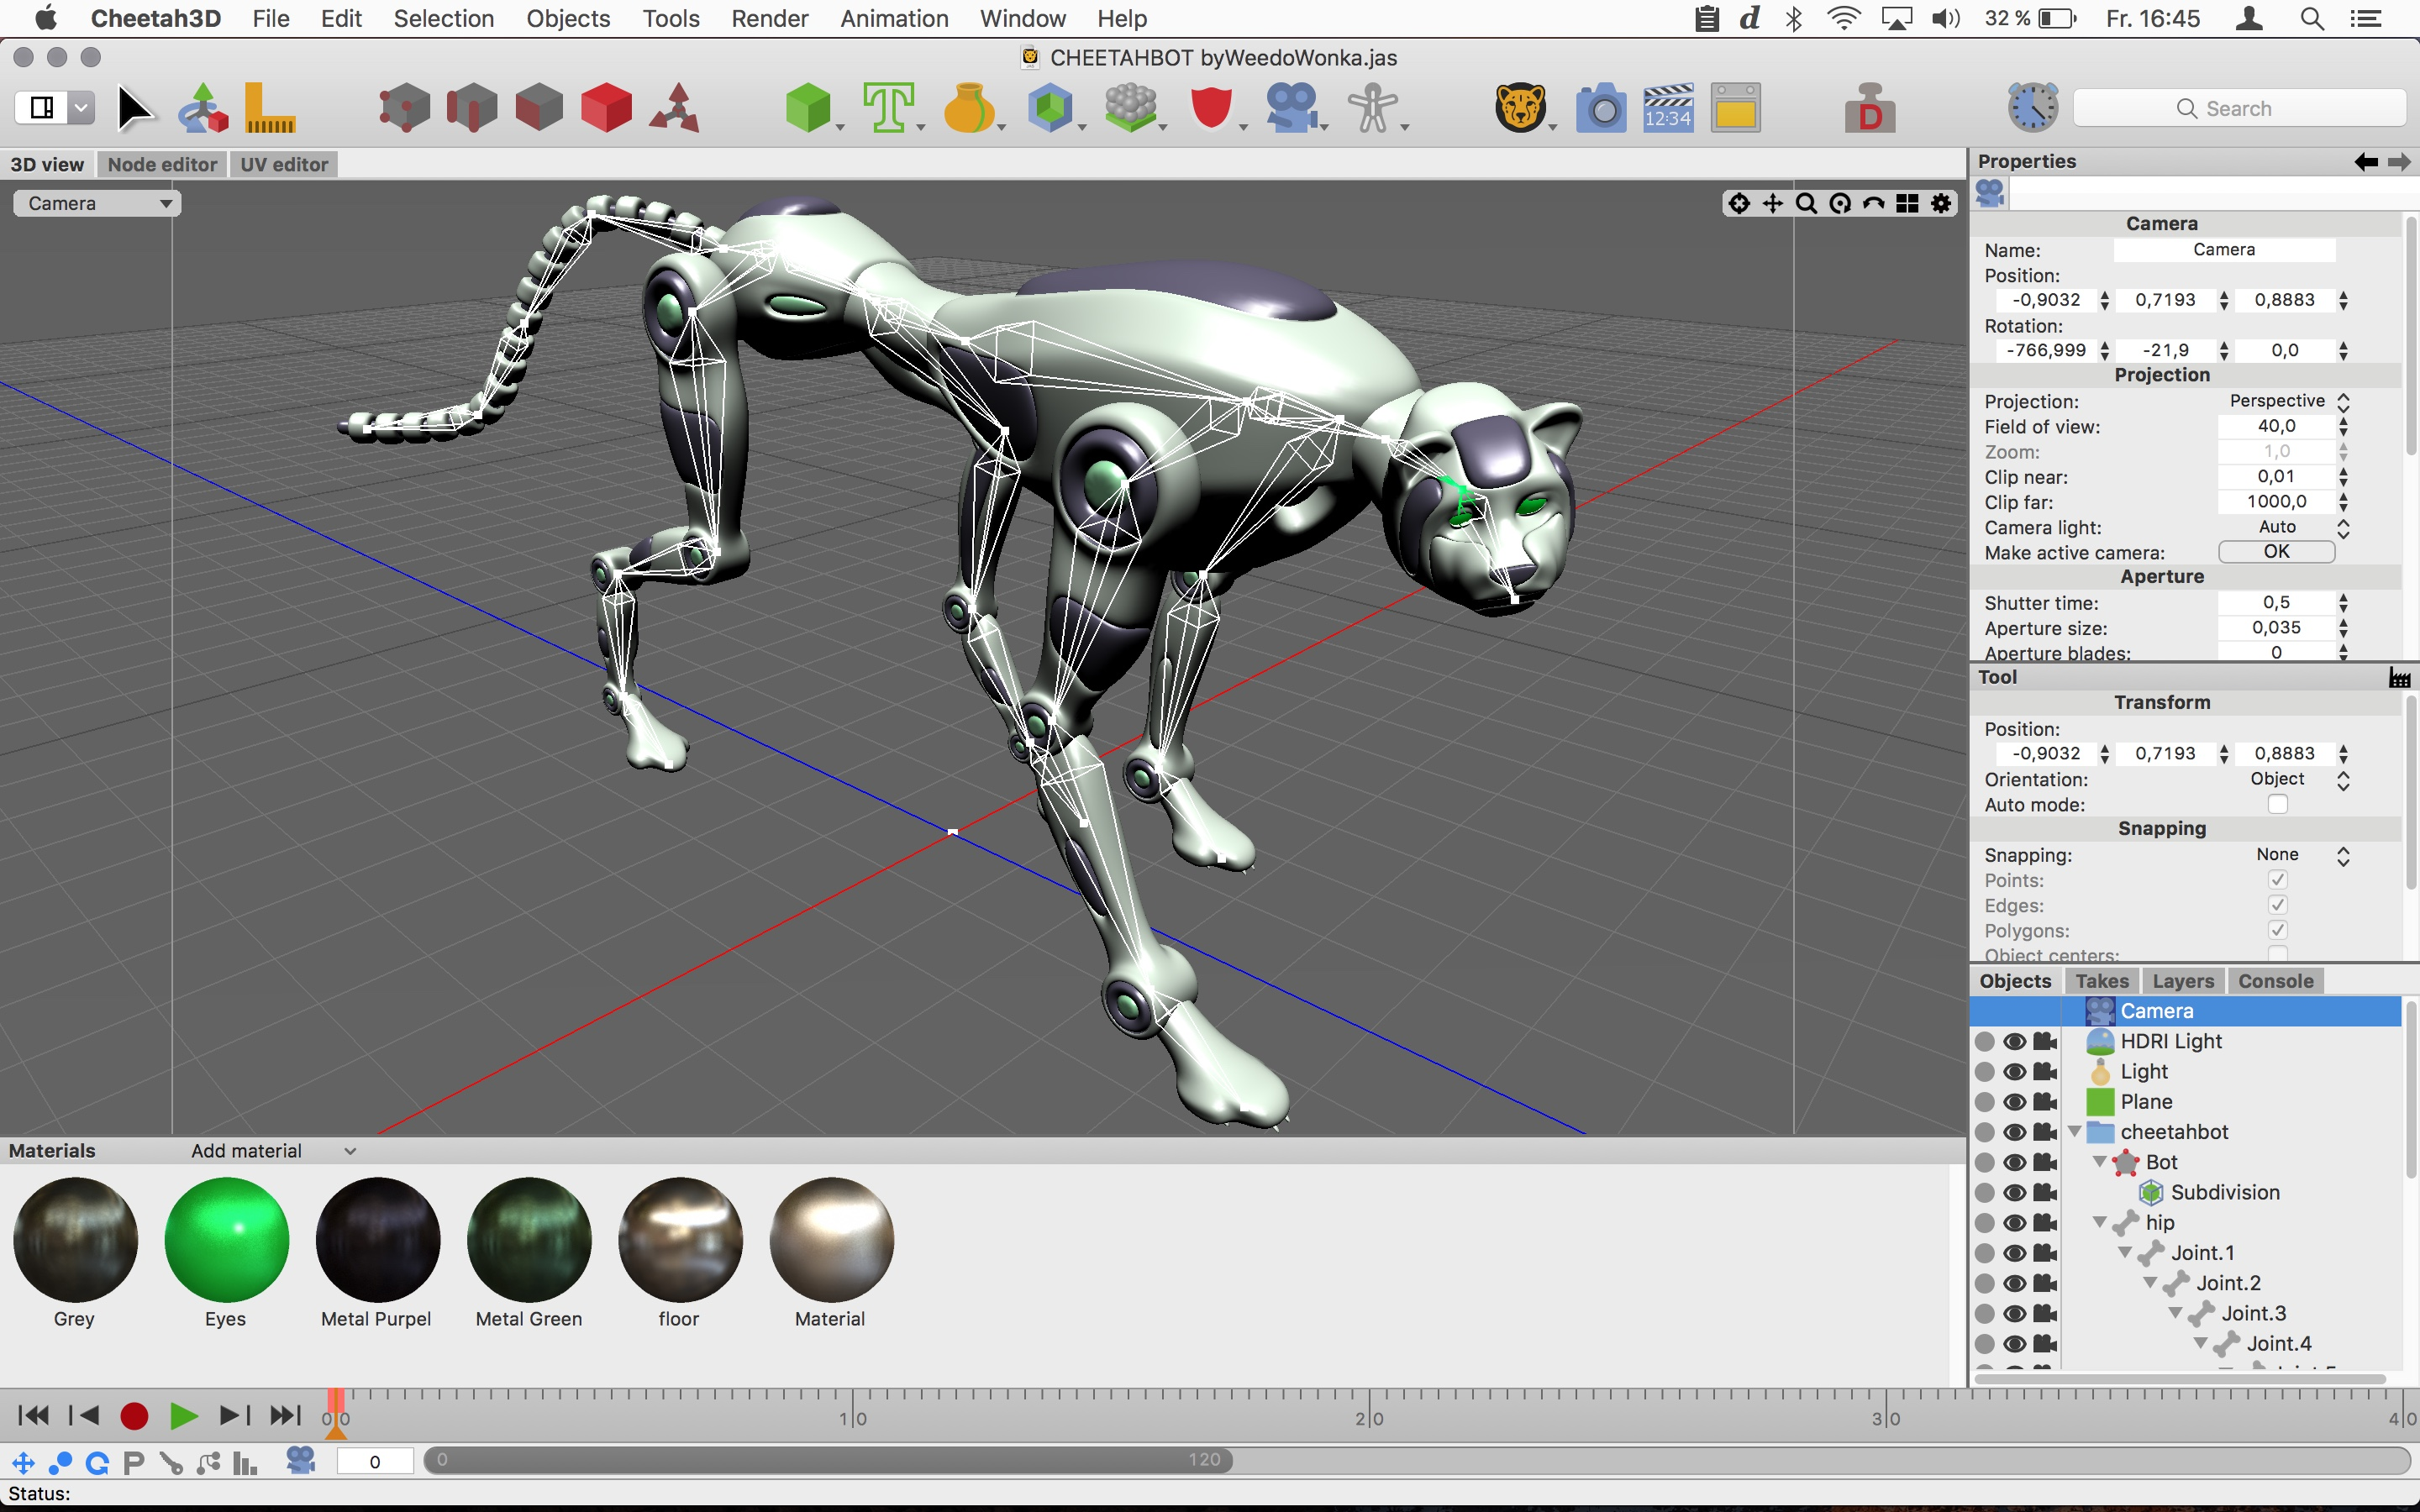 Cheetah3D 7.2 released: Adds support for HEVC, ProRes, IES Lights & more Image